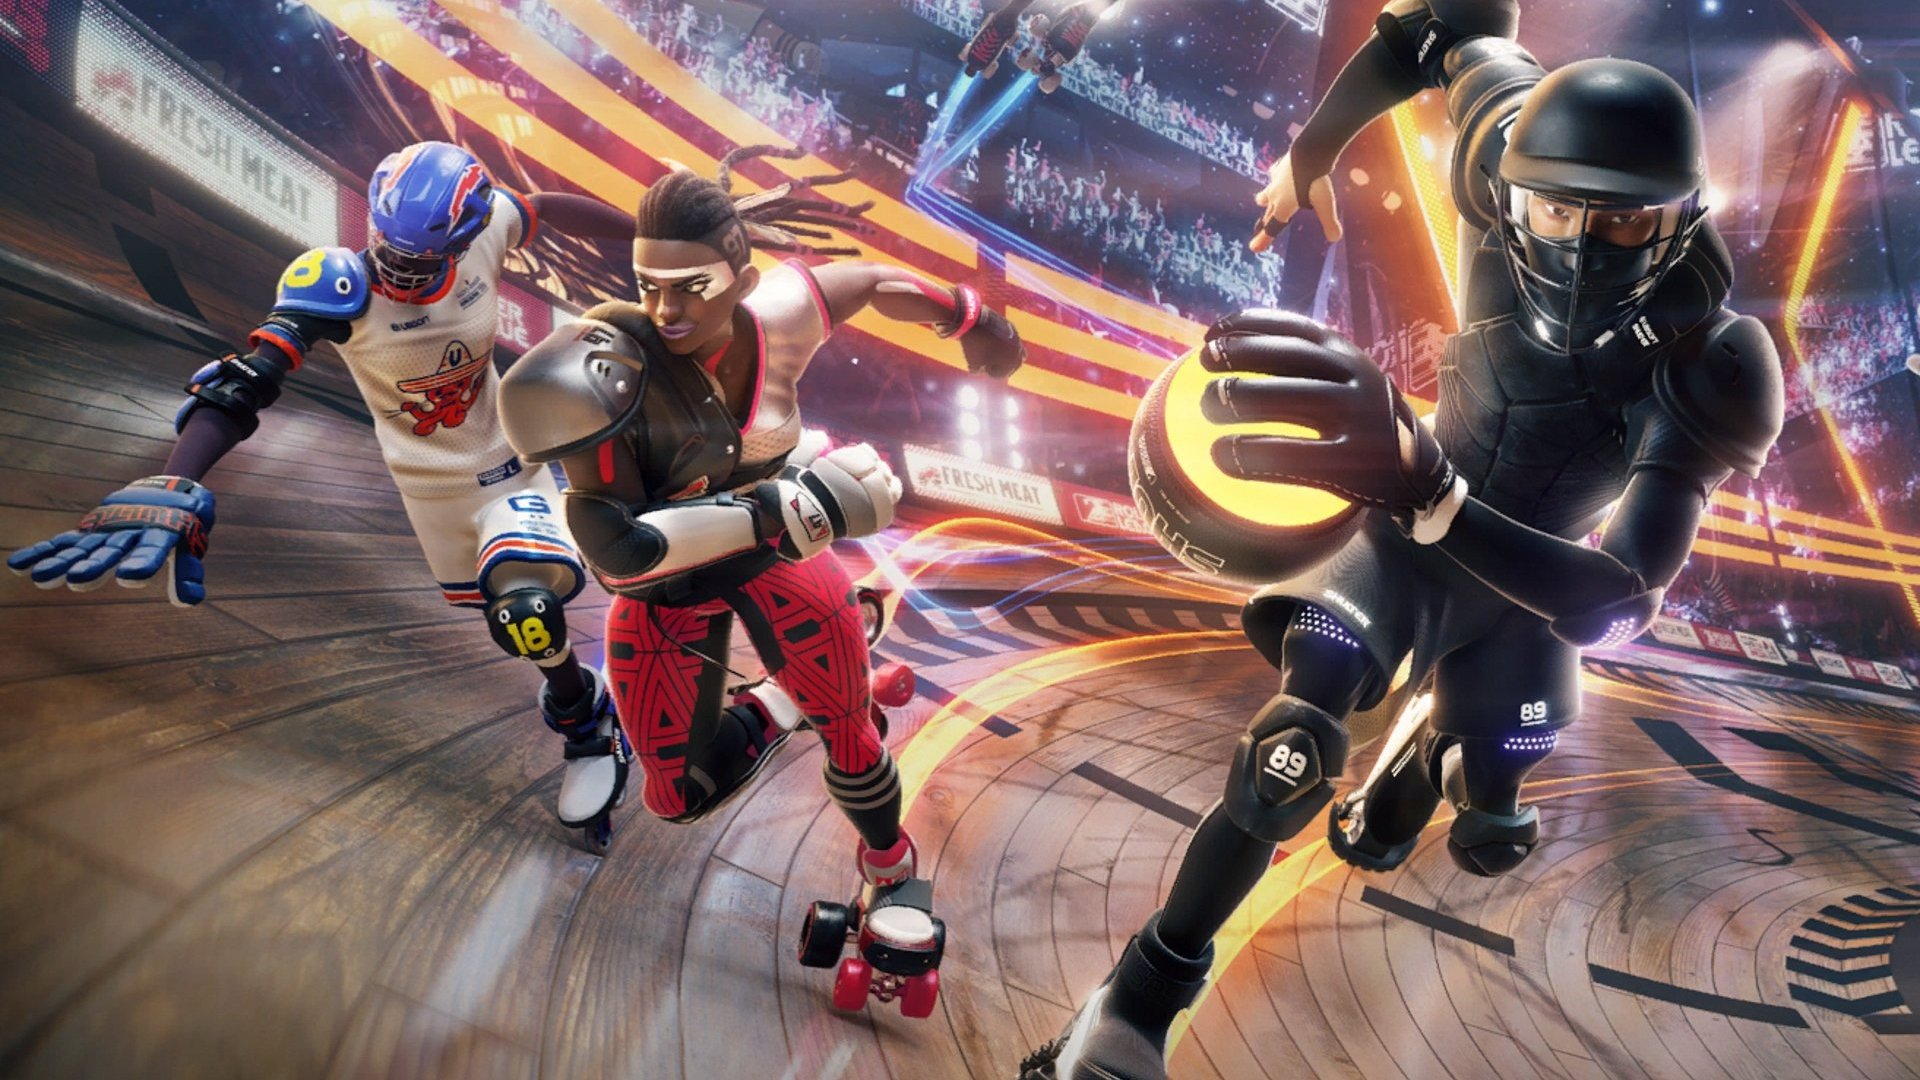 Is Ubisoft's Roller Champions really a clone of Rocket